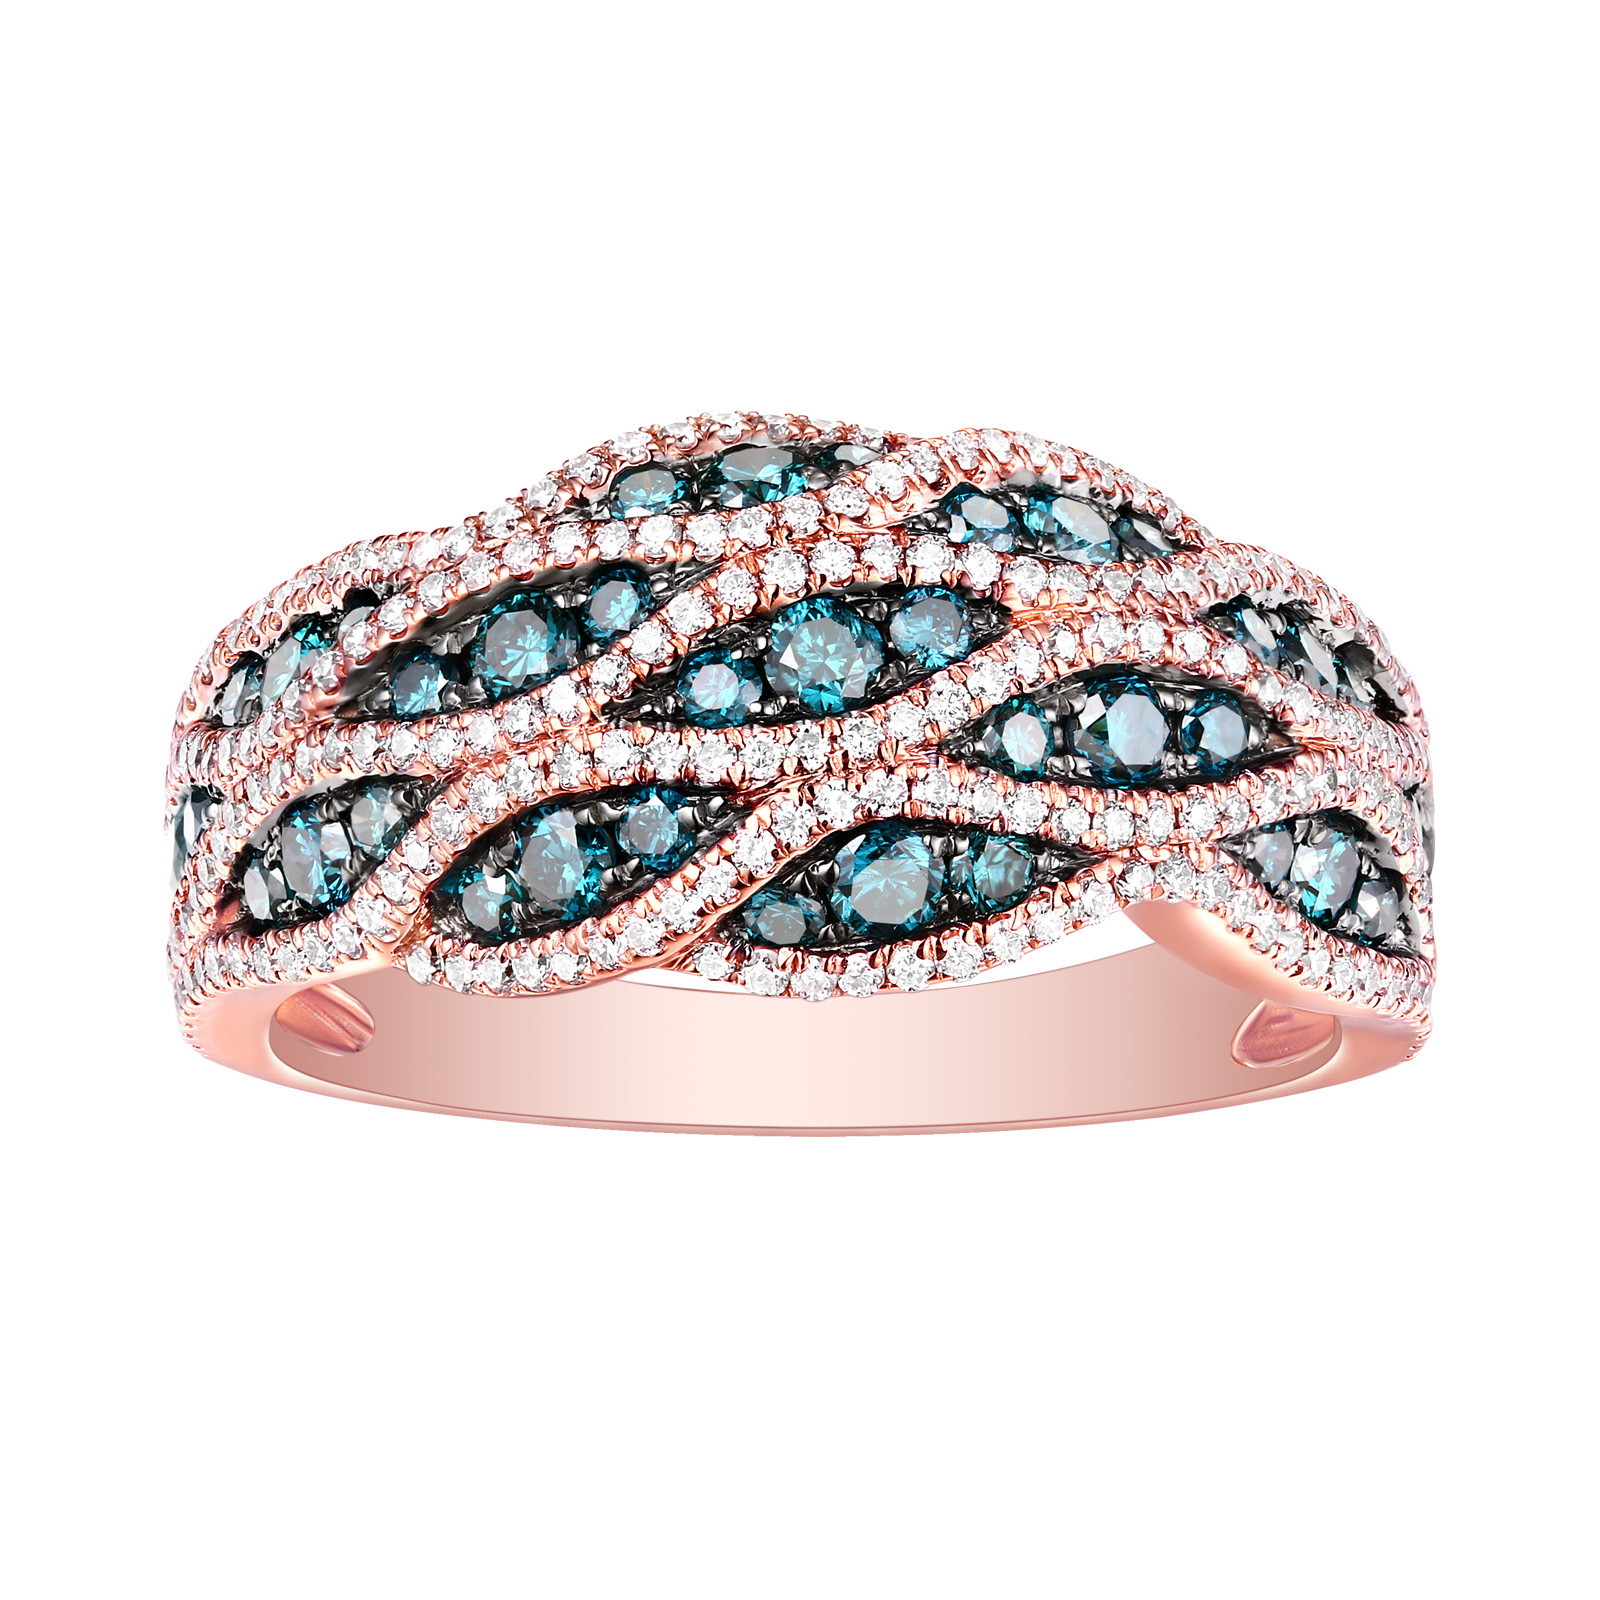 R26273BLU – 14K Rose Gold Diamond Ring, 1.12 TCW